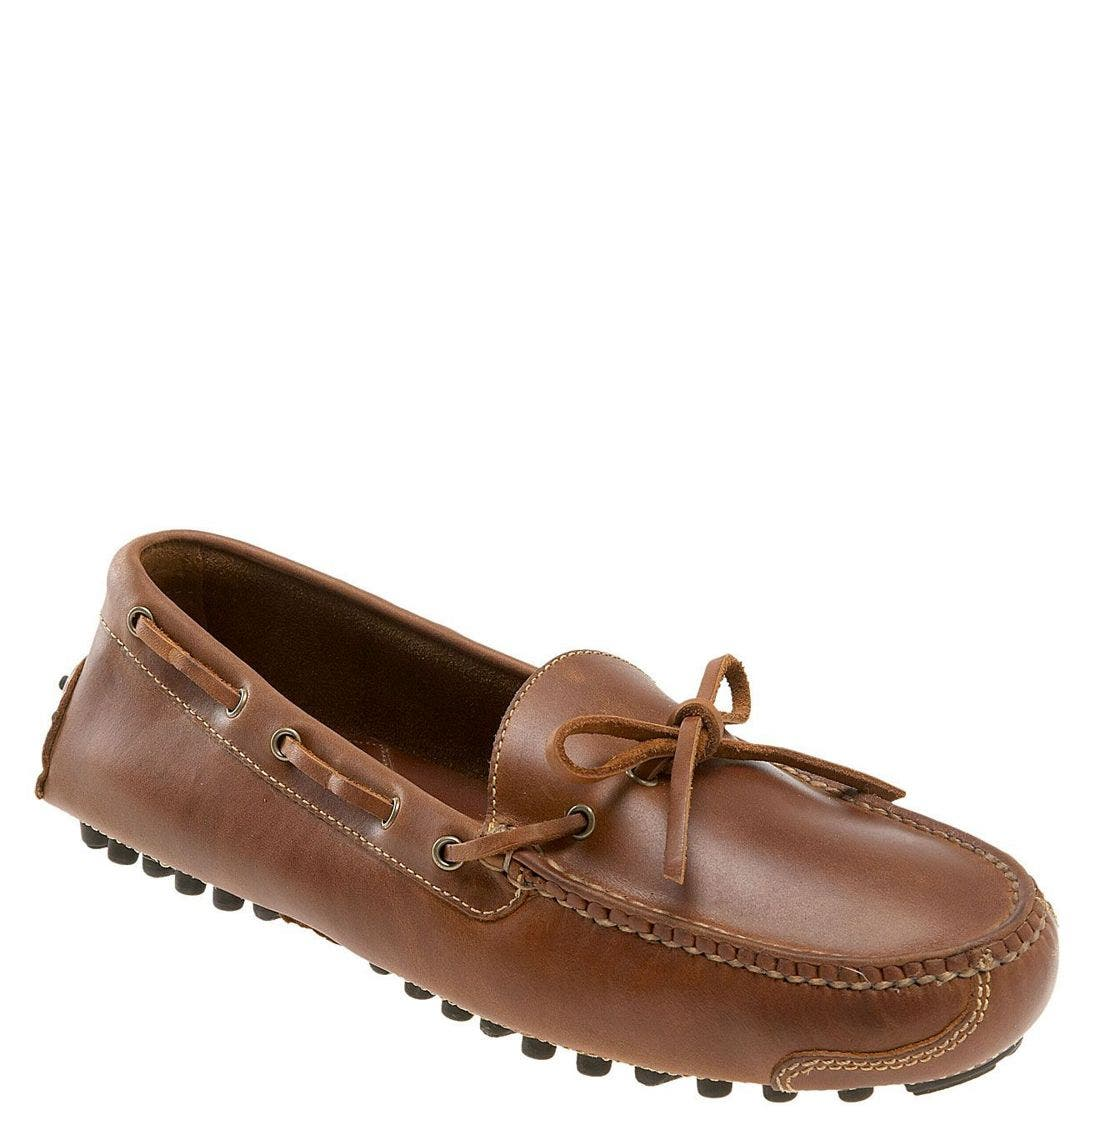 Alternate Image 1 Selected - Cole Haan 'Gunnison' Moccasin